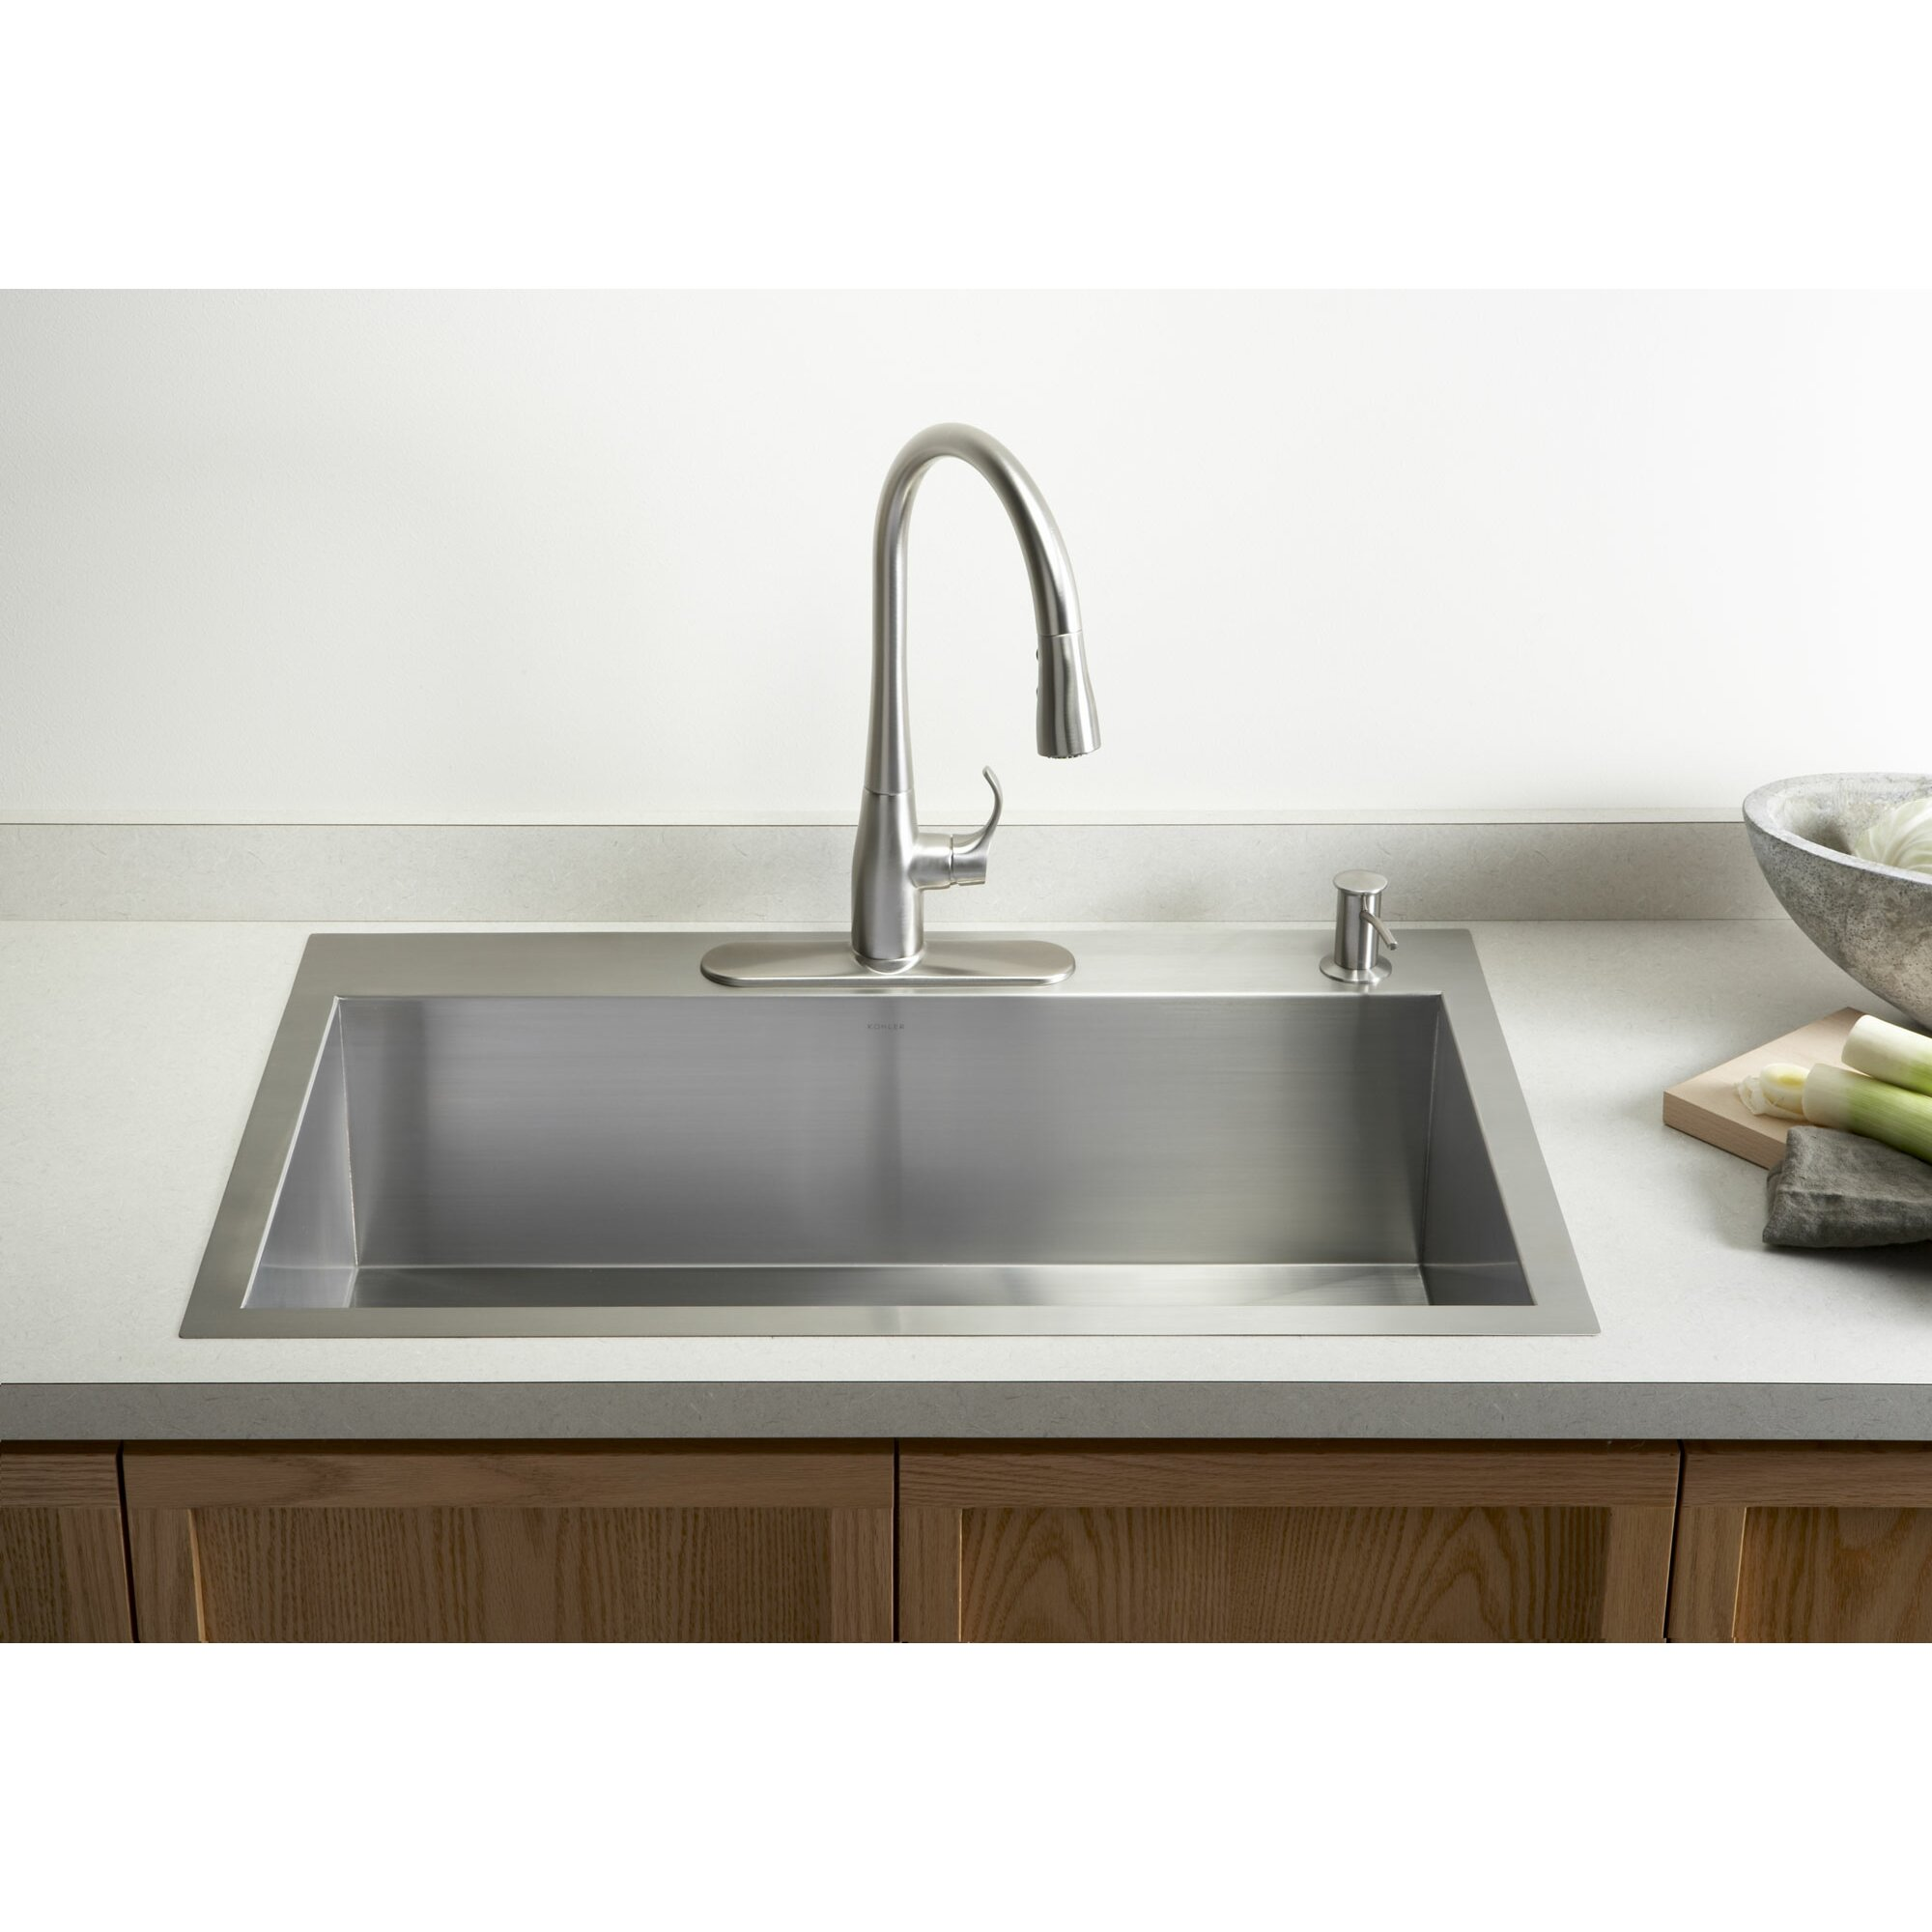 exceptional Single Basin Kitchen Sink 33 X 22 #6: Kohler Vault 33u0026quot; x 22u0026quot; x 9-5/16u0026quot; Top-